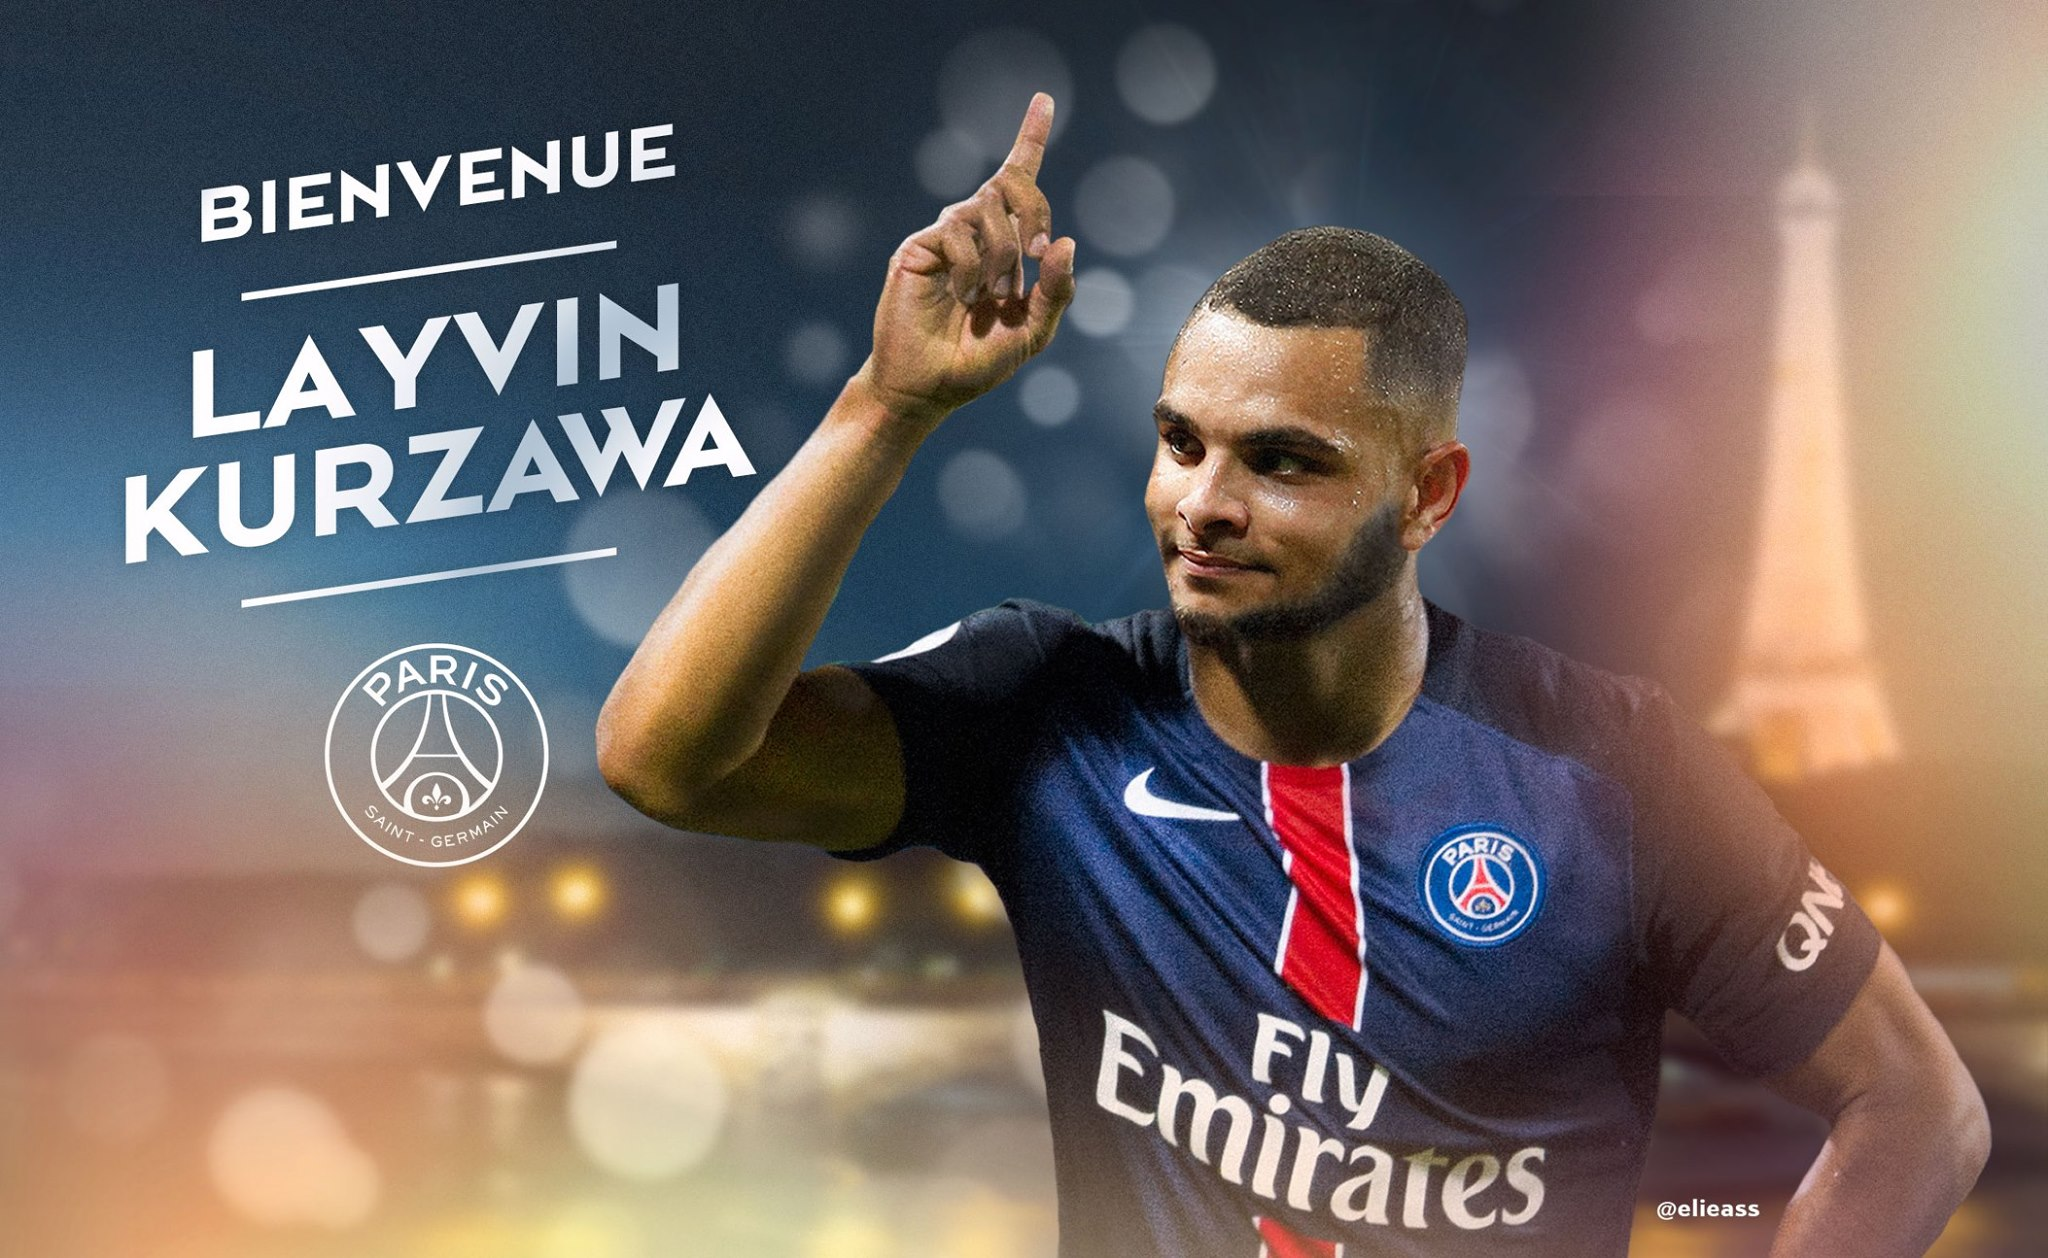 Layvin Kurzawa rejoint officiellement le Paris Saint-Germain!